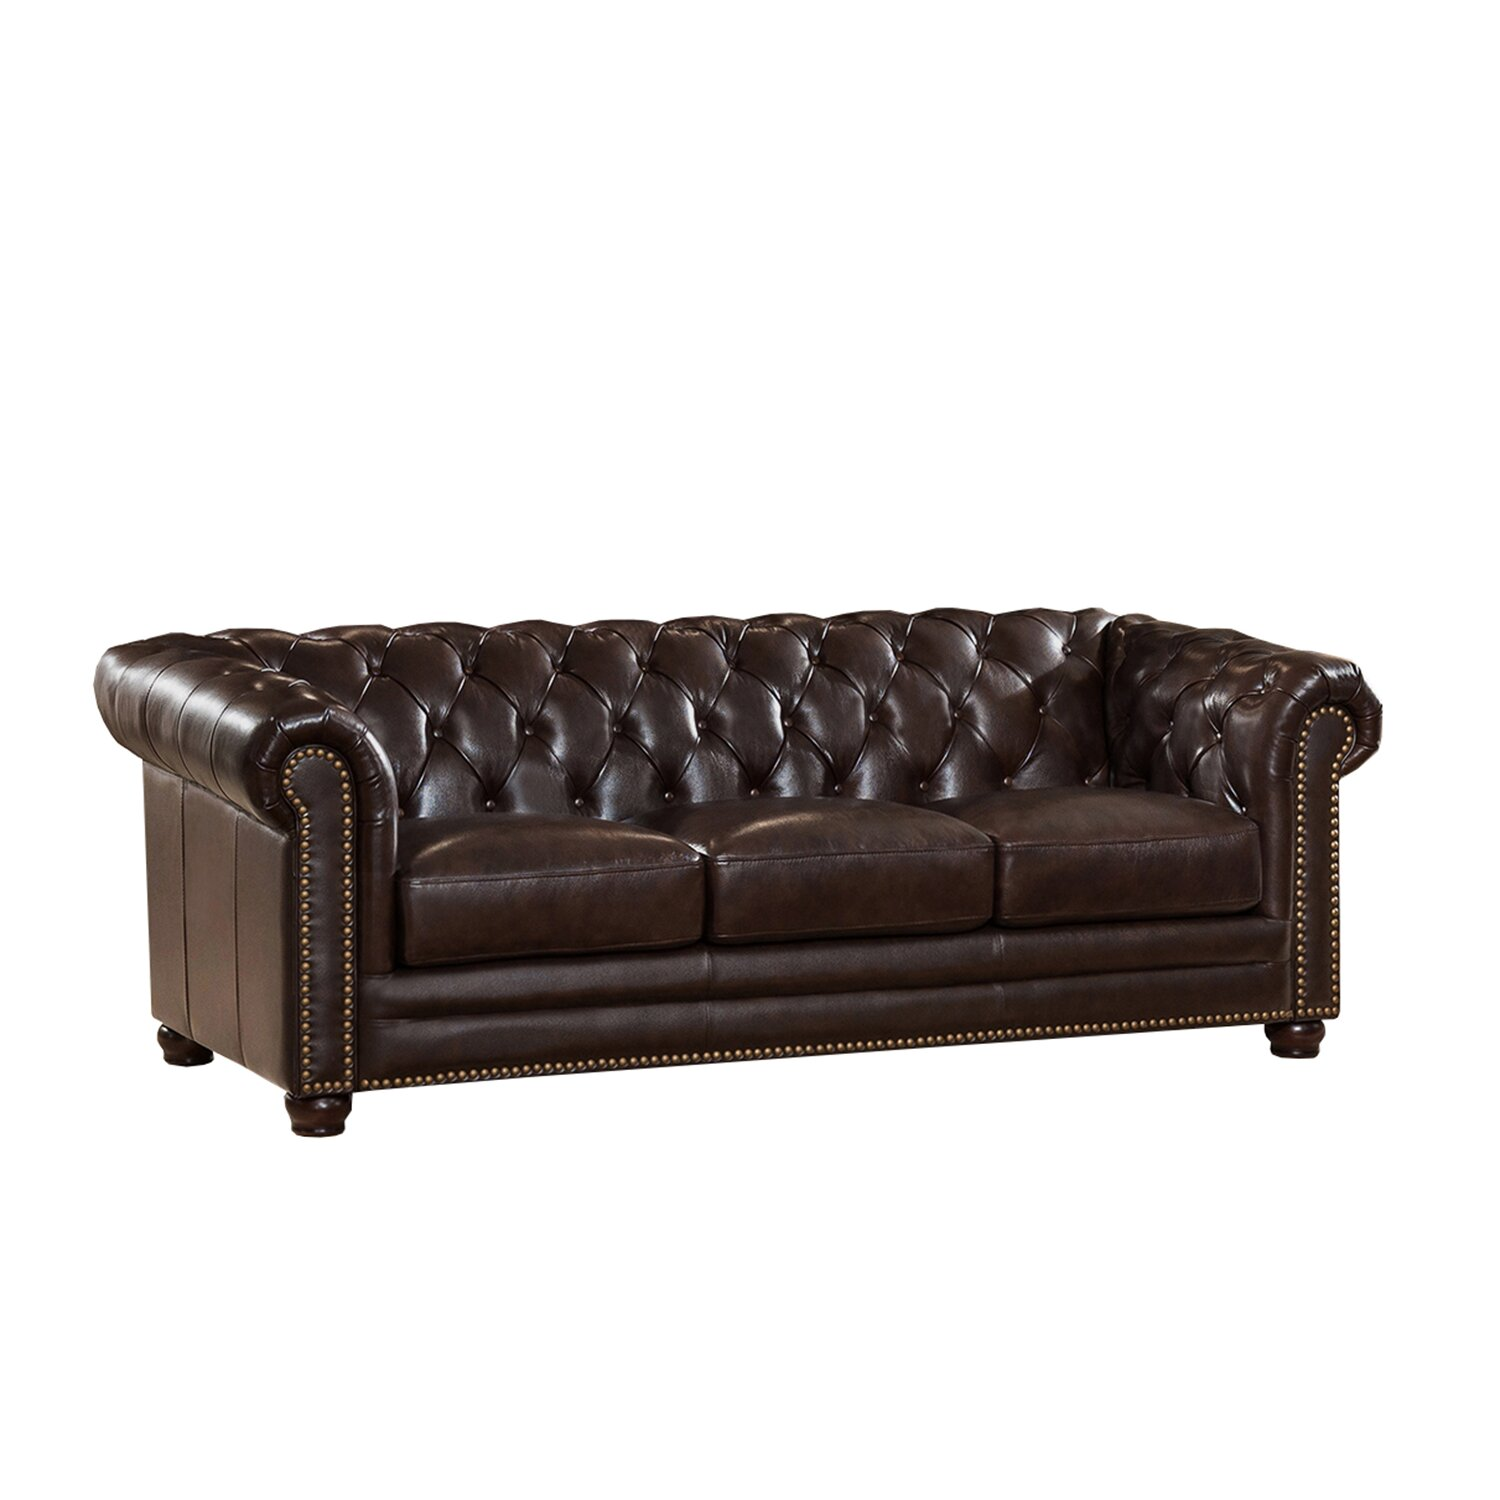 amax kensington top grain leather chesterfield sofa wayfair. Black Bedroom Furniture Sets. Home Design Ideas